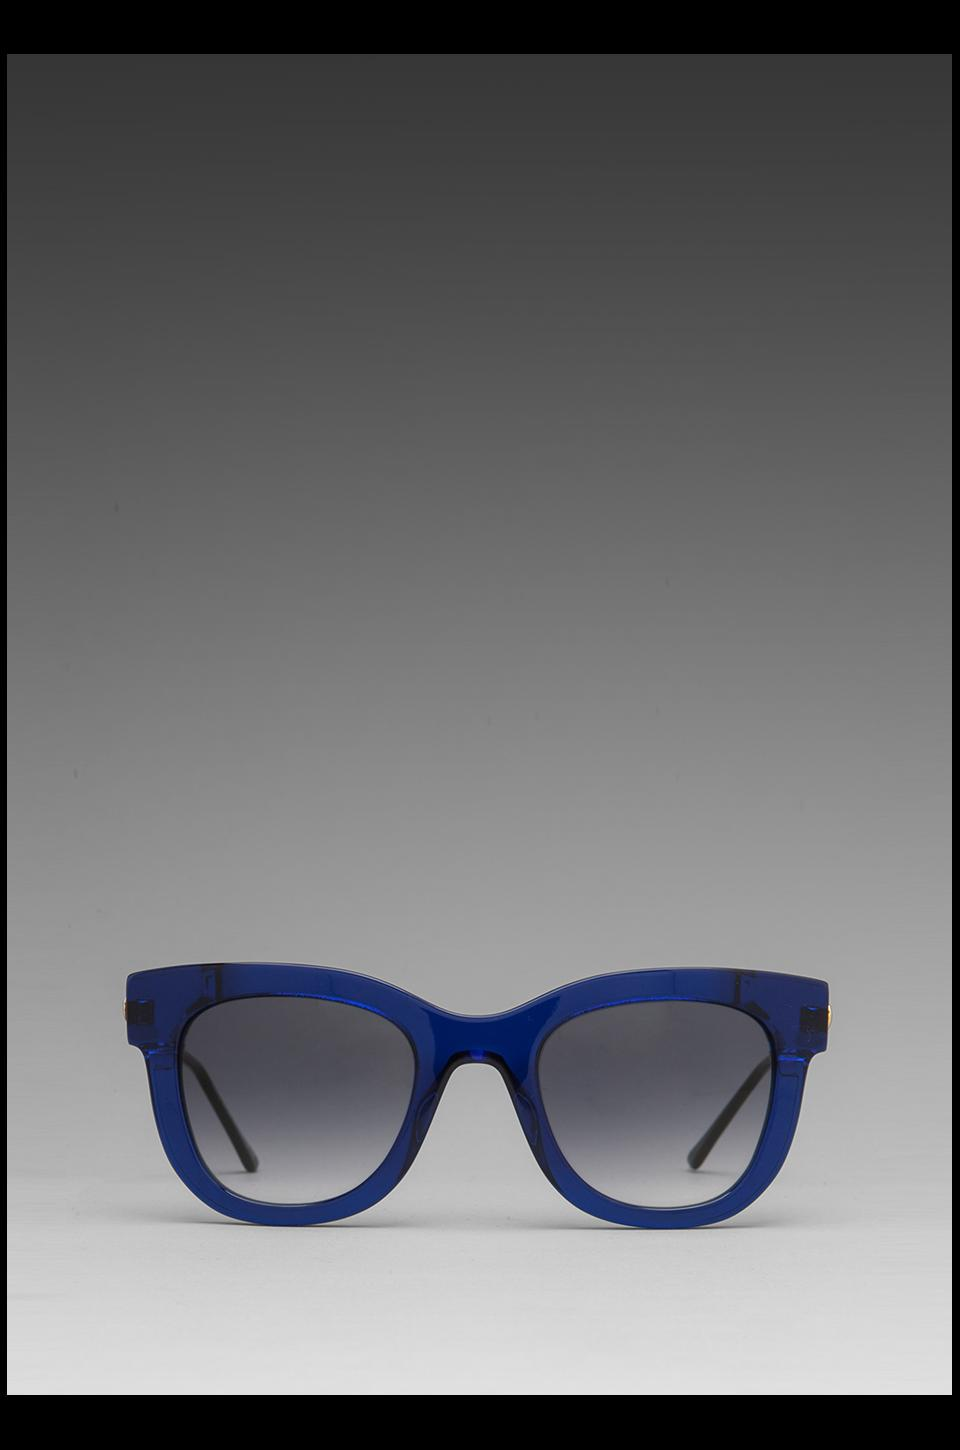 Thierry Lasry Sexxxy Sunglasses in Midnight